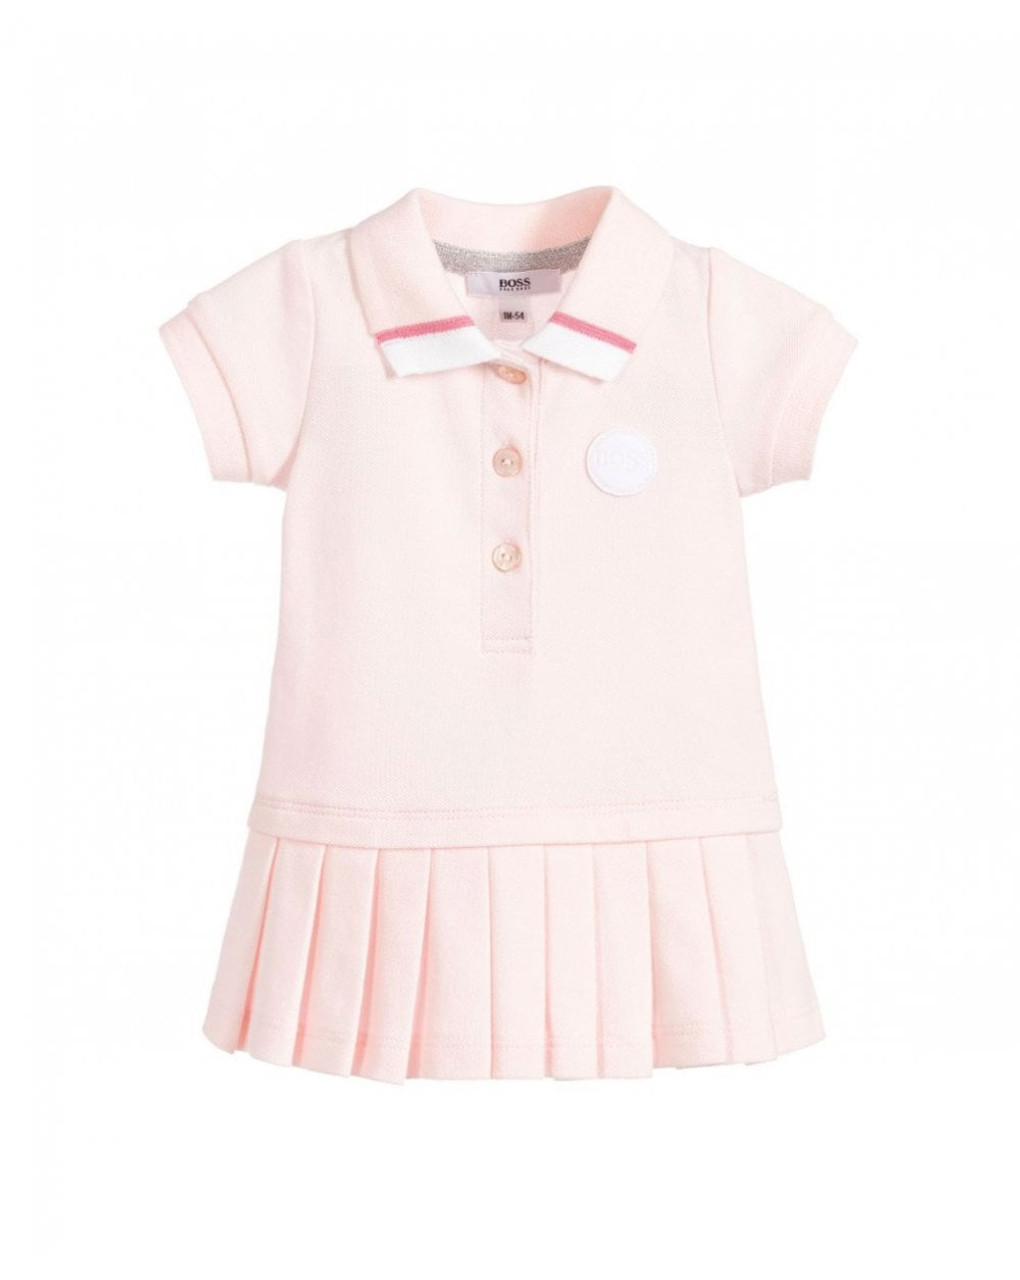 Outfits & Sets Baby Clothes Pink Babygrow Velour Clothes, Shoes & Accessories